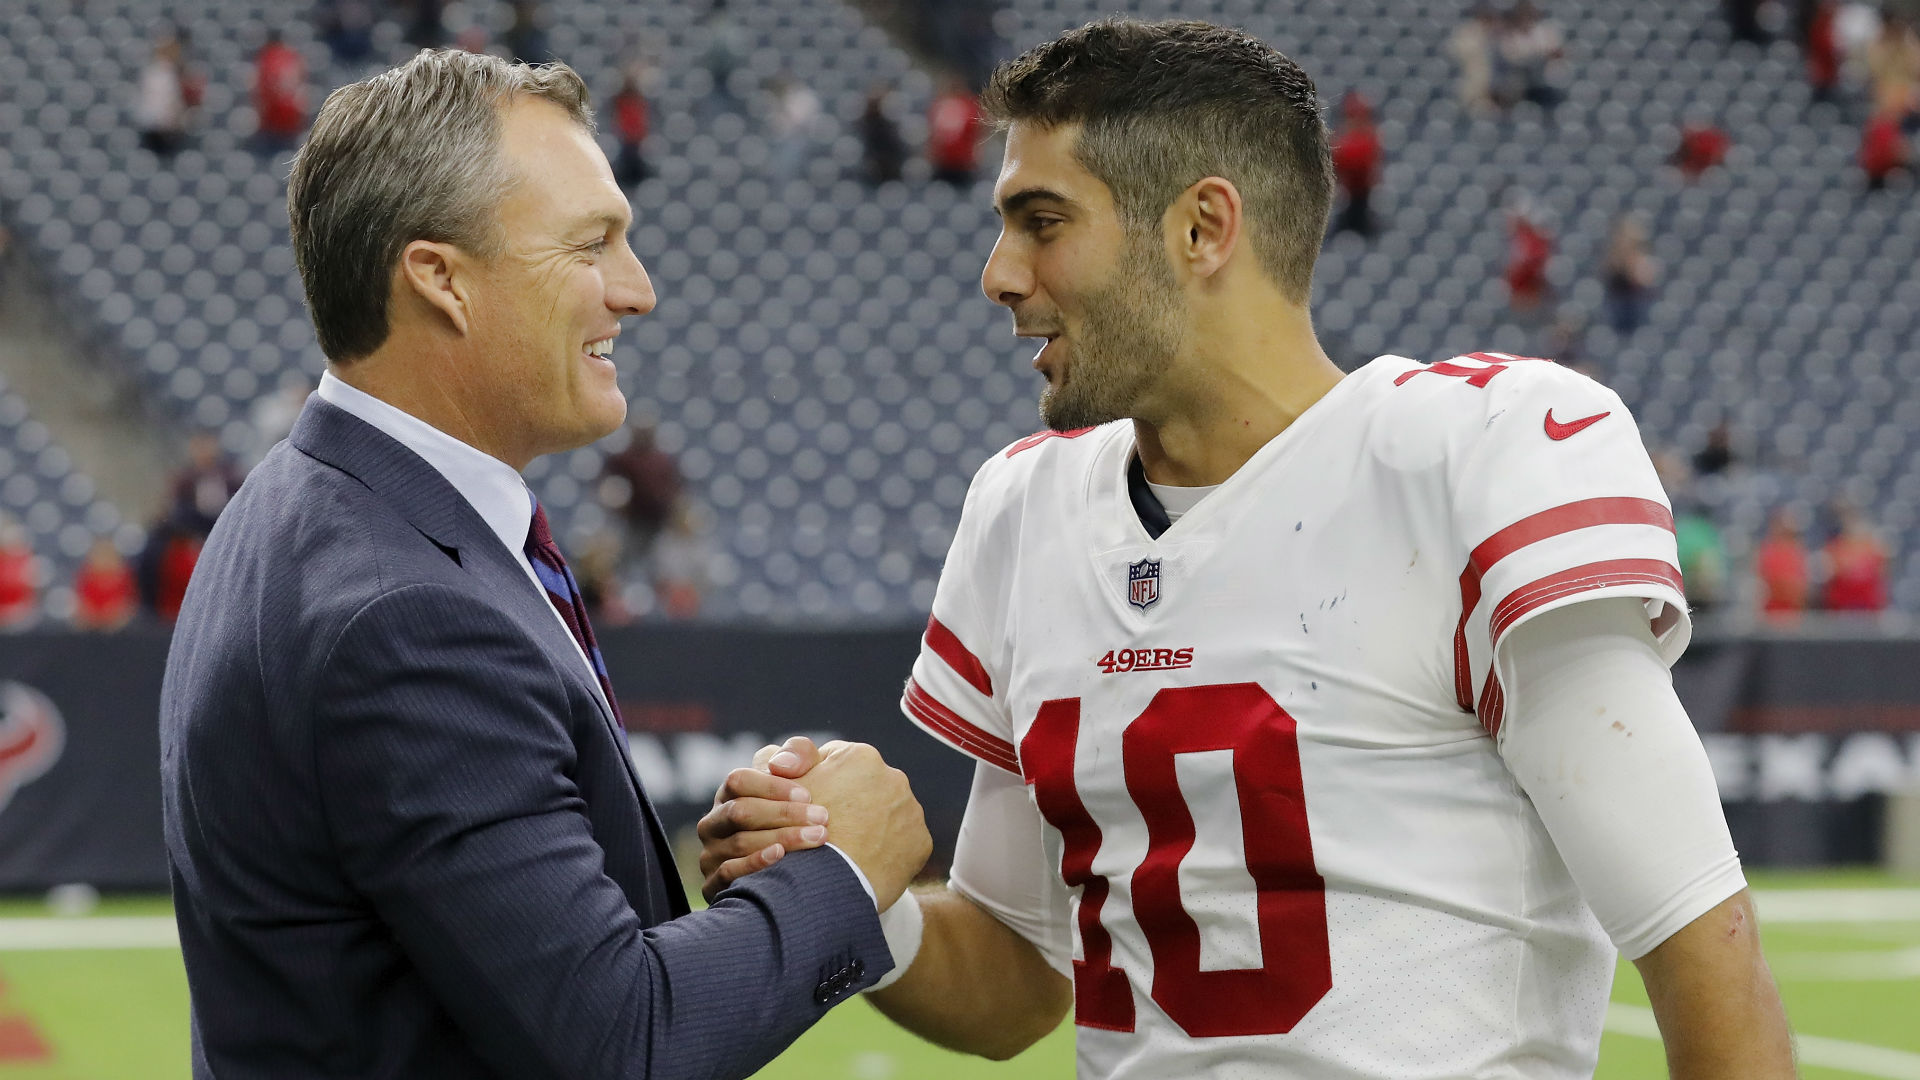 Lynch-garoppolo-122717-getty-ftrjpg_7uhsbz9delro1r6lhl4540eq2